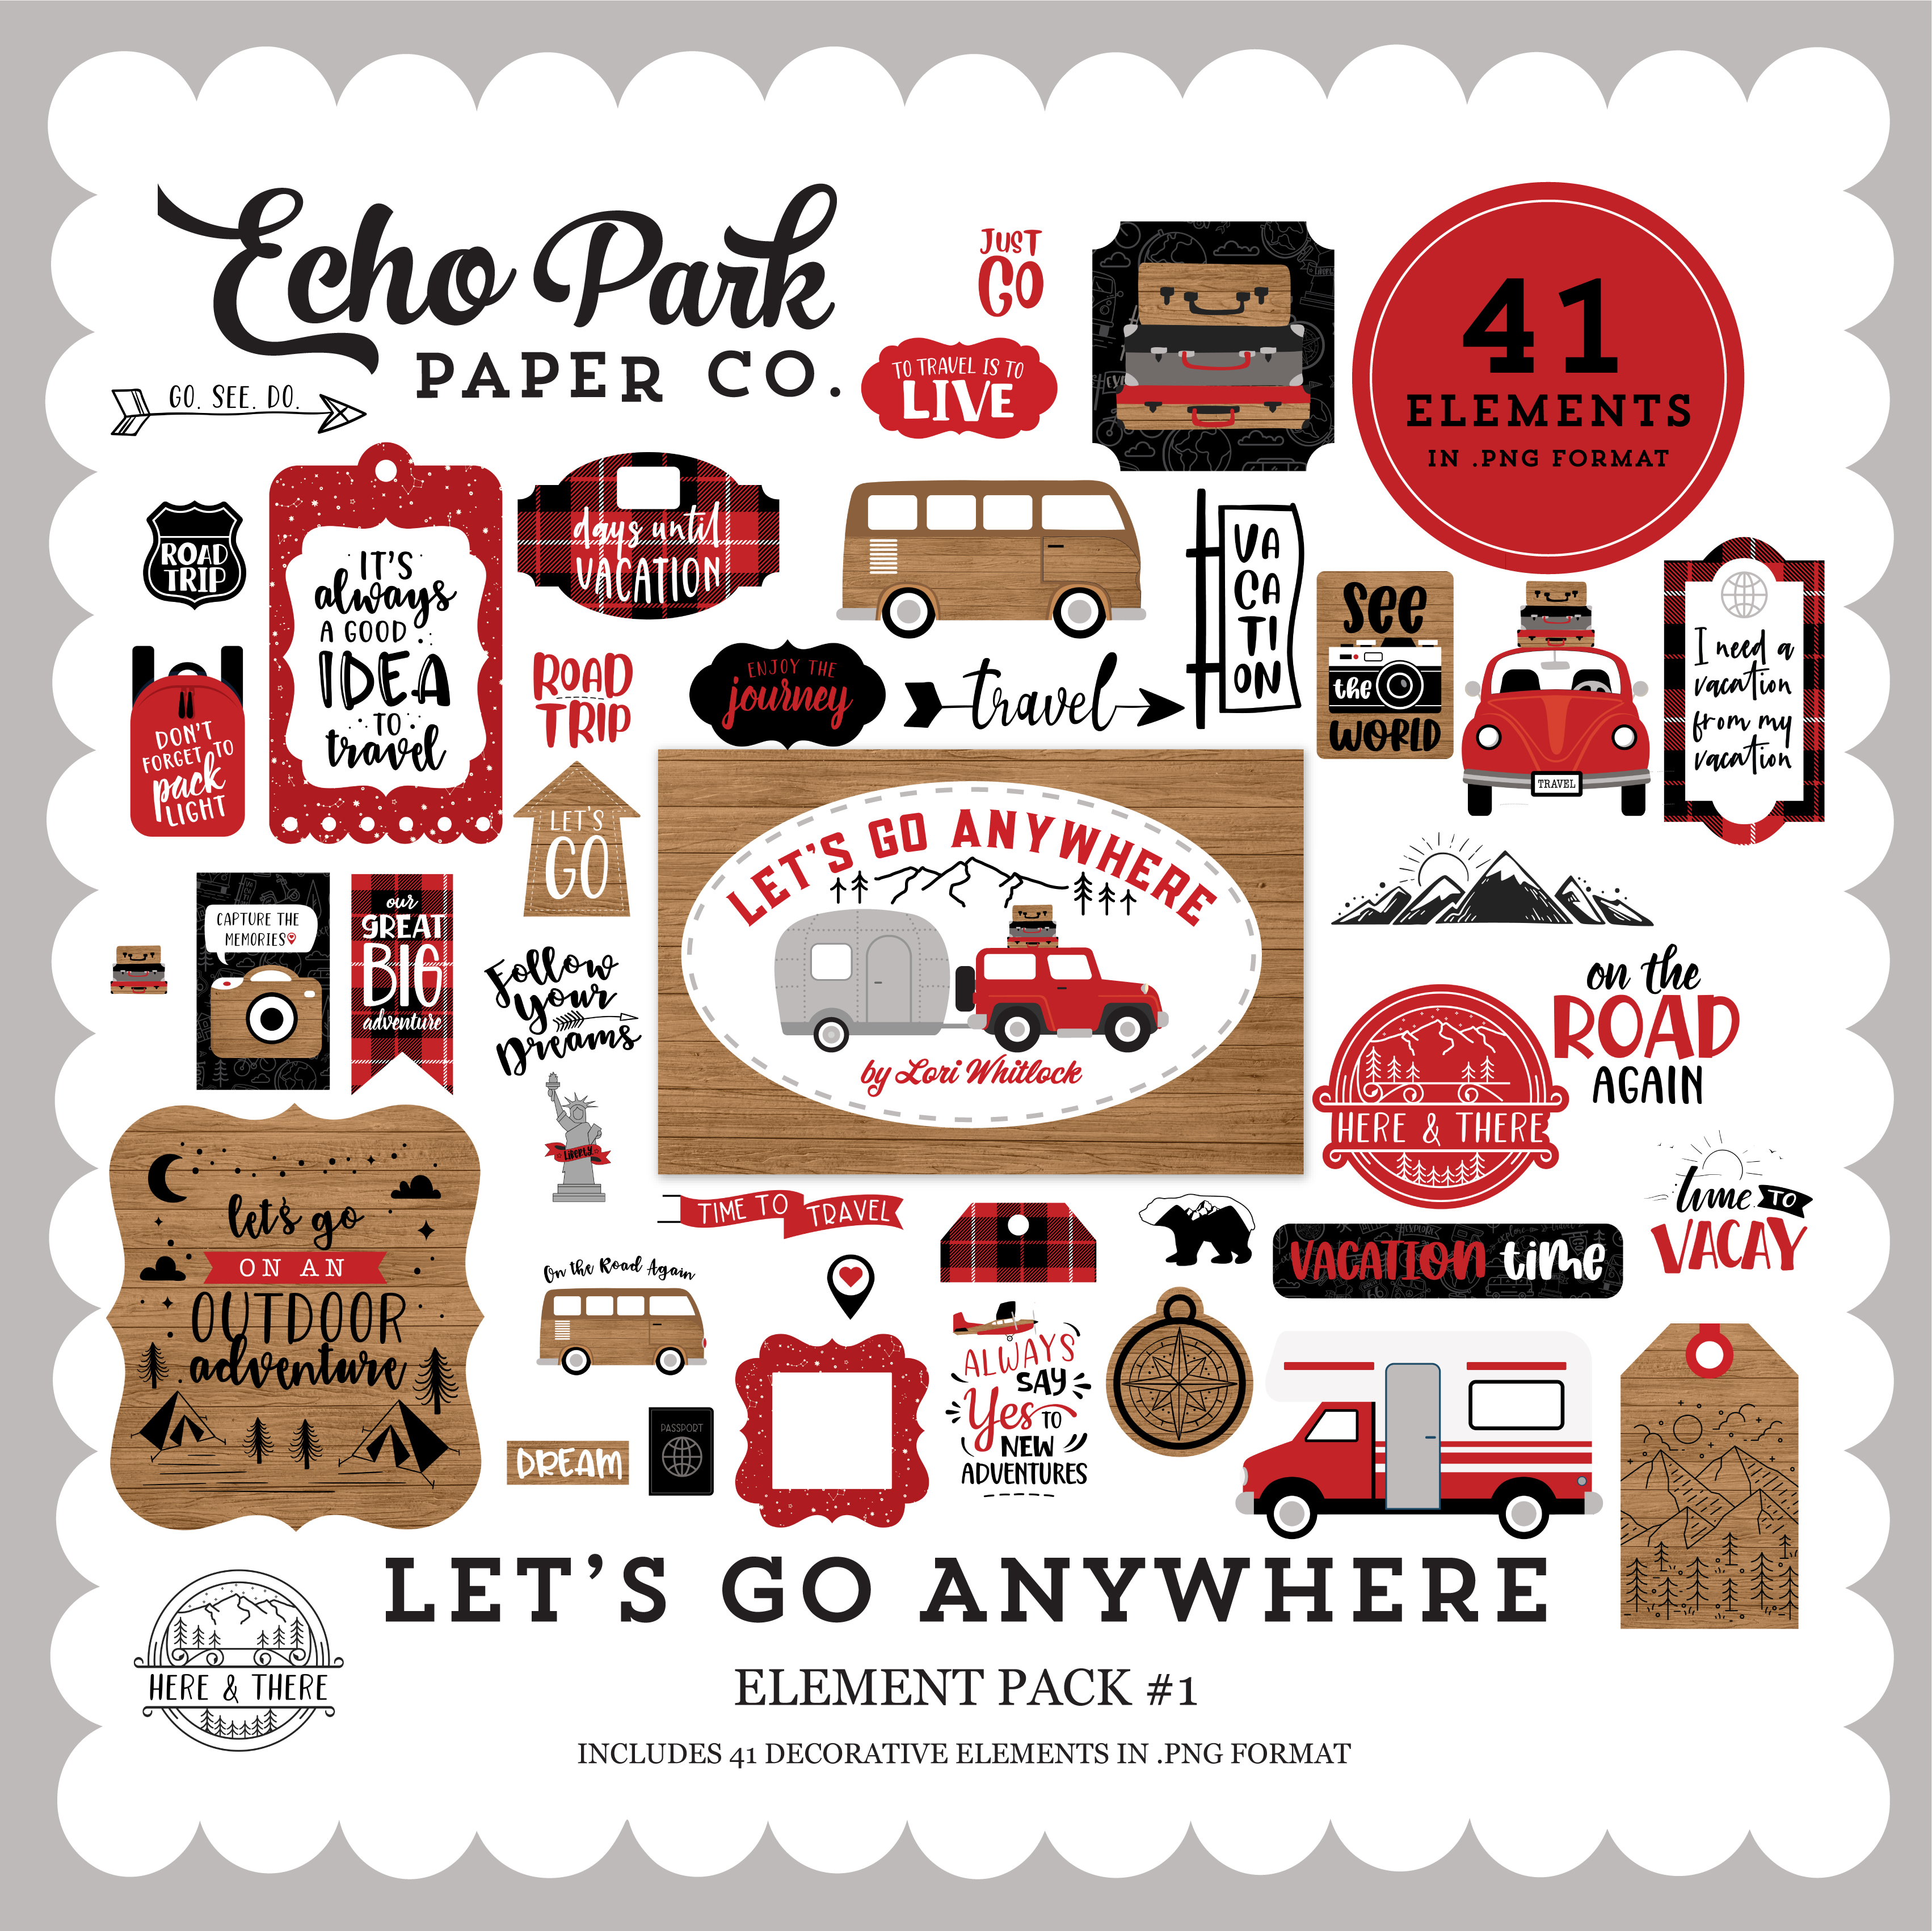 Let's Go Anywhere Element Pack #1